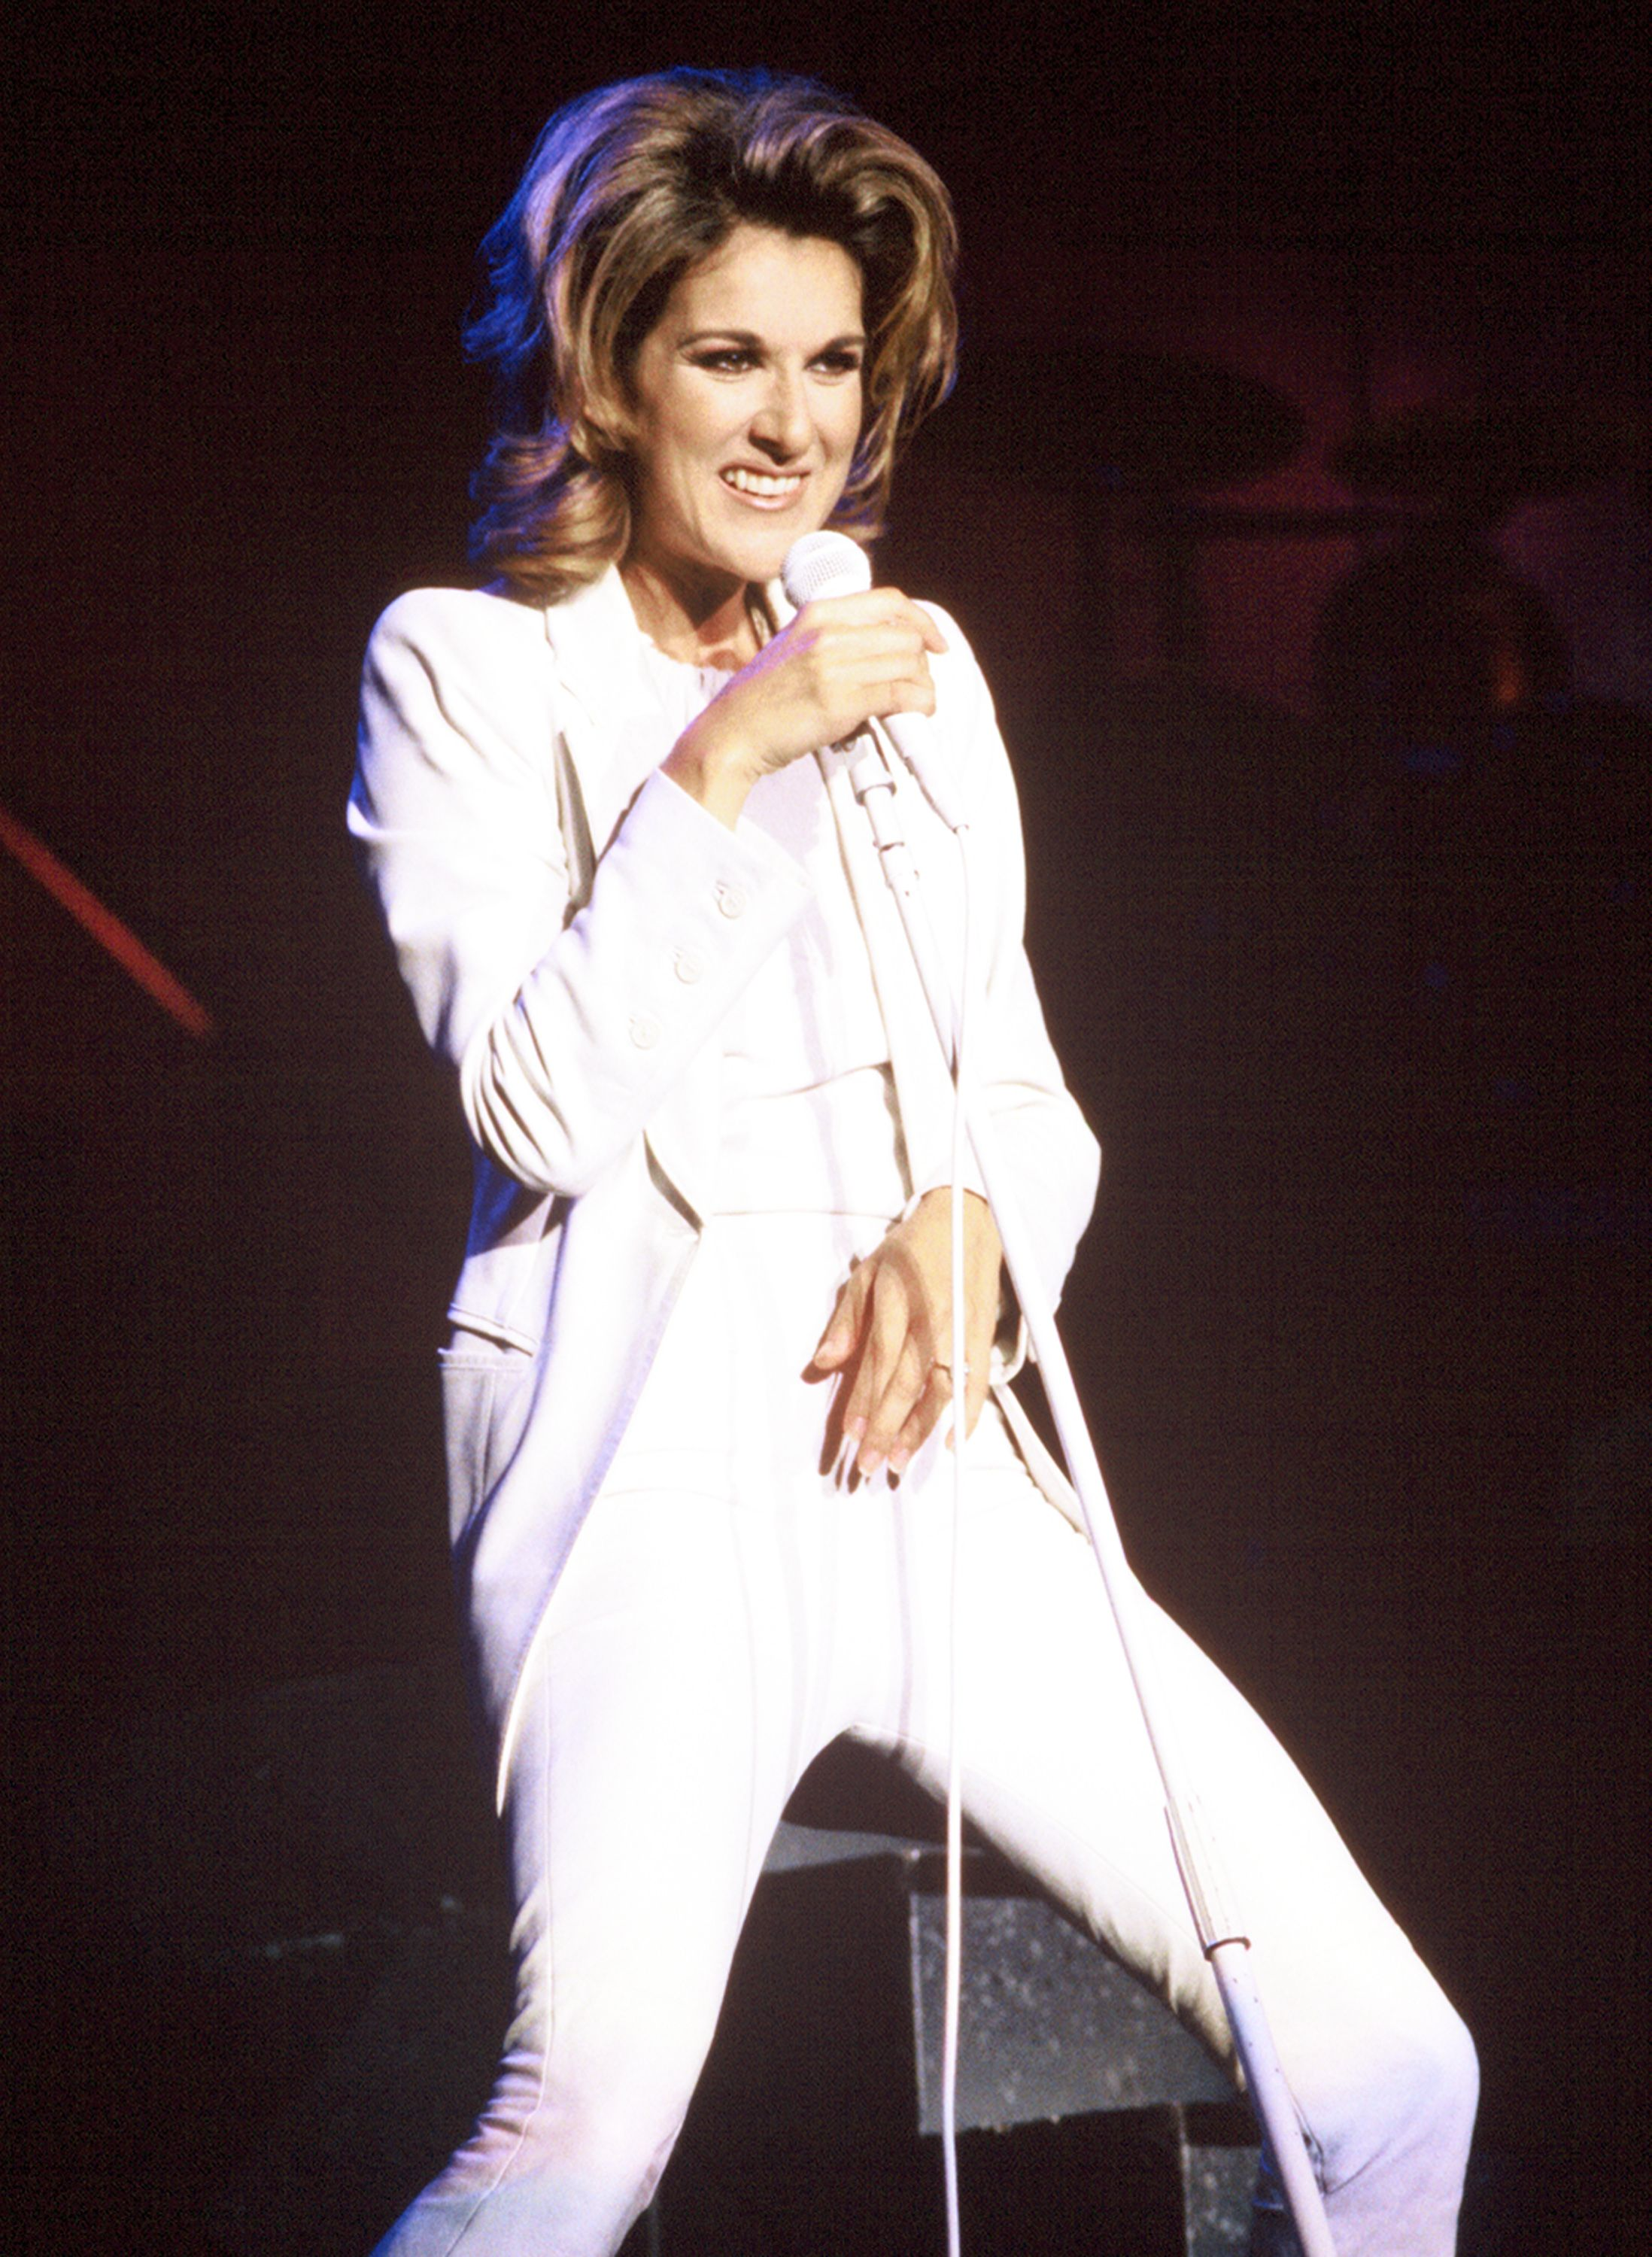 Celine Dion performs at Shoreline Amphitheater in Mountain View, California in 1996   Source: Getty Images